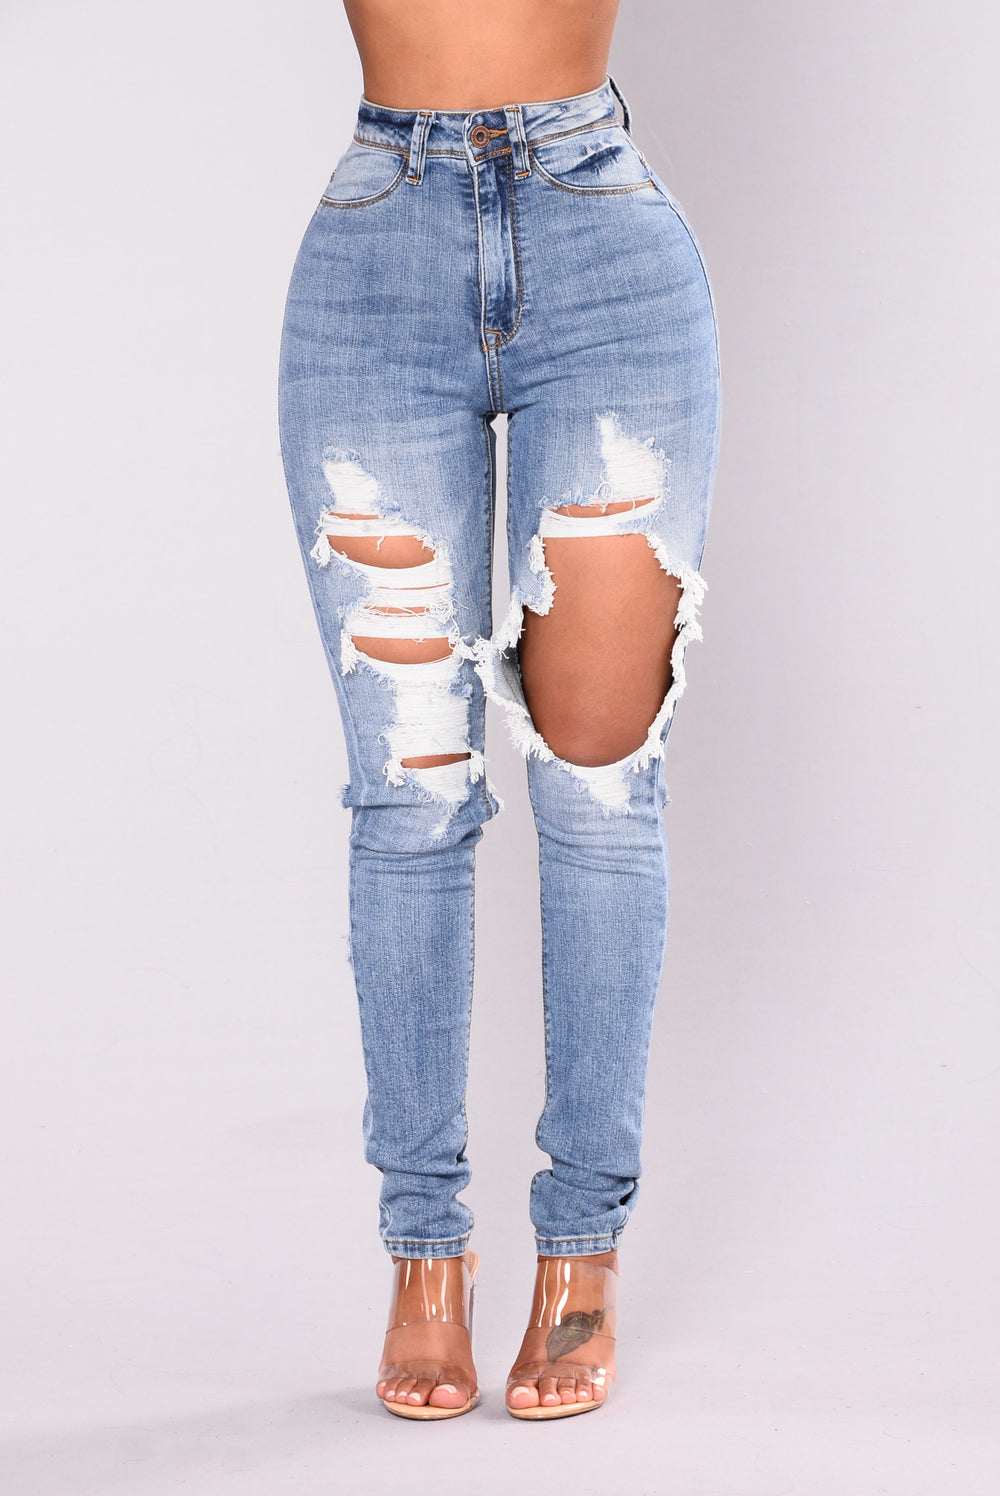 Know This High Rise Jeans - Light